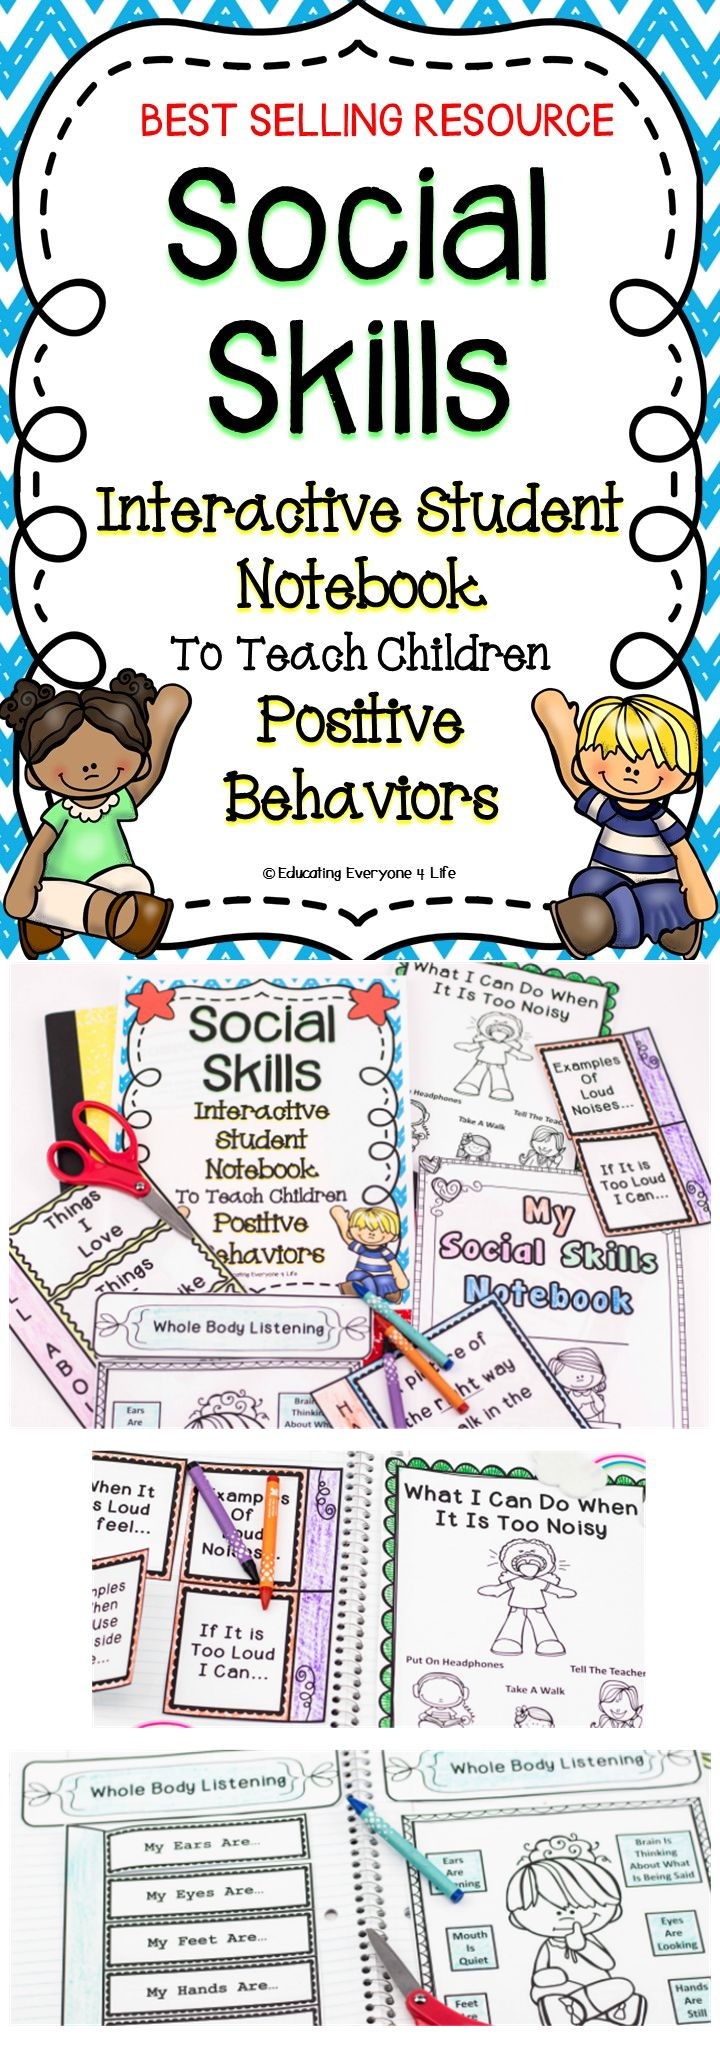 """Are you looking for interactive lessons to teach social skills. This interactive student notebook will teach your students the critical social skills they need to be successful. Teachers who have used this resource are saying, """"This has been an amazing addition to my therapy routine! Thank you!"""" """"Perfecto! I have a counselor that comes to work with my whole class, but this will be something that I can use daily during the first week or so of school to reinforce behavior expectations."""